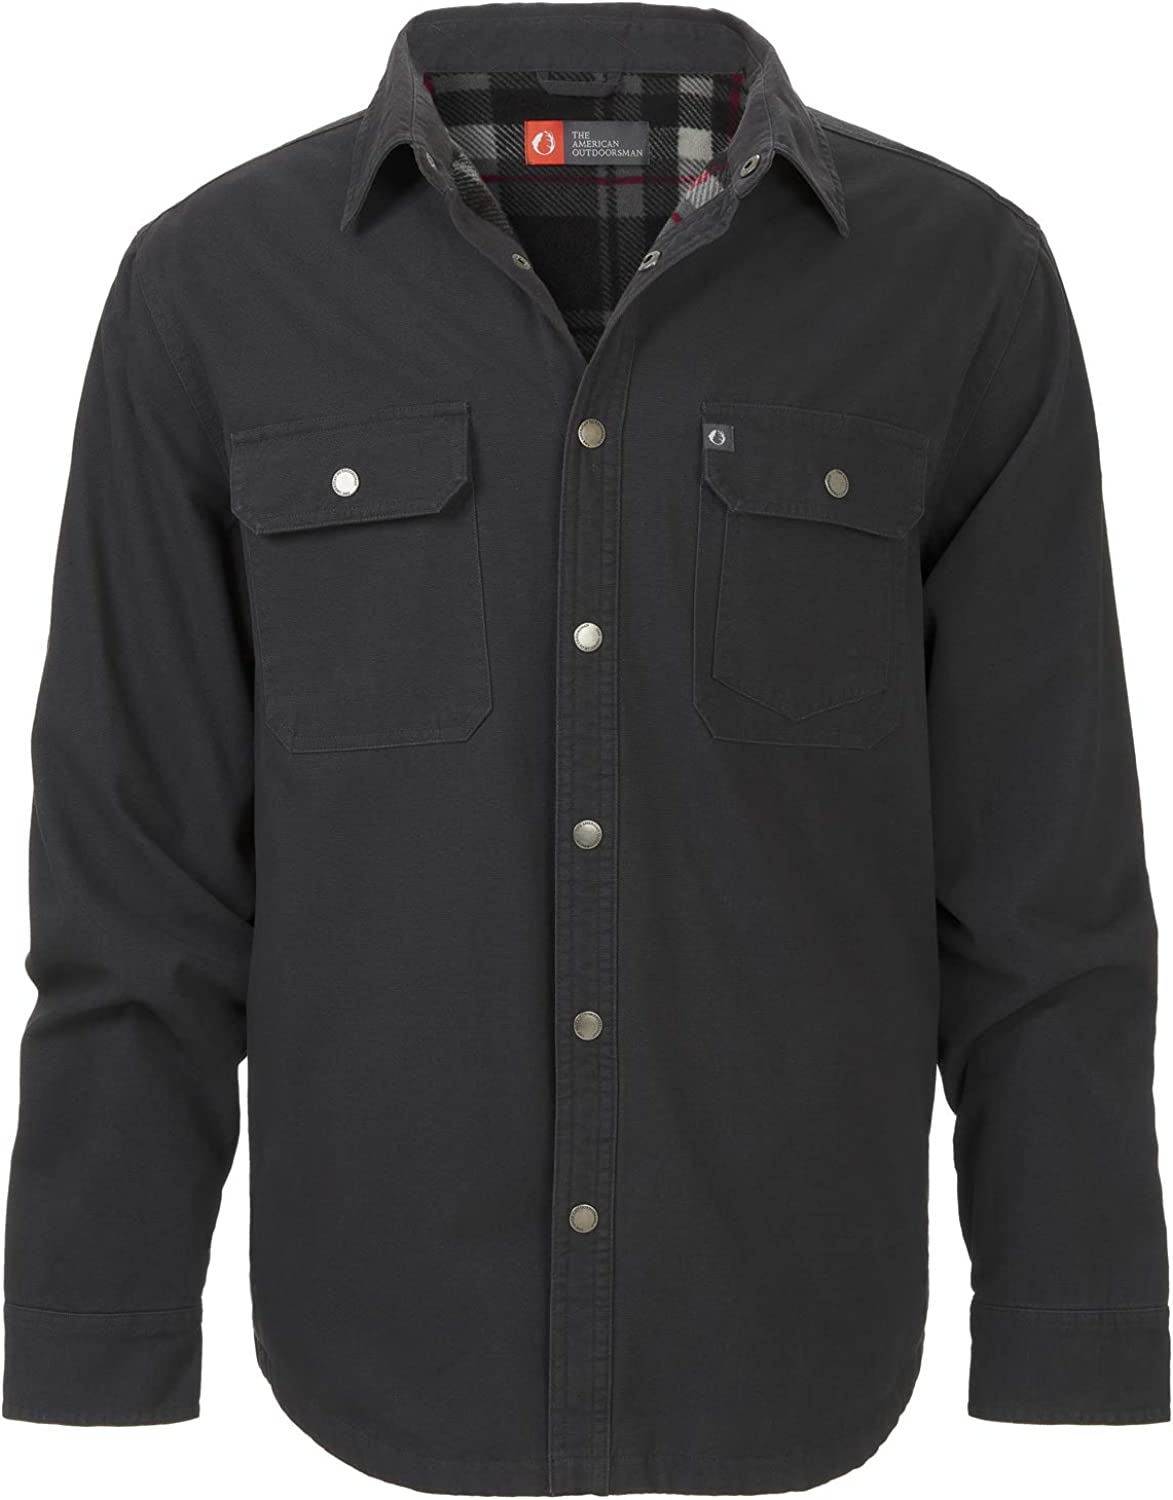 The American Outdoorsman Solid Canvas Shirt Jacket Lined with Printed Polar Fleece Lining for Hiking and Camping